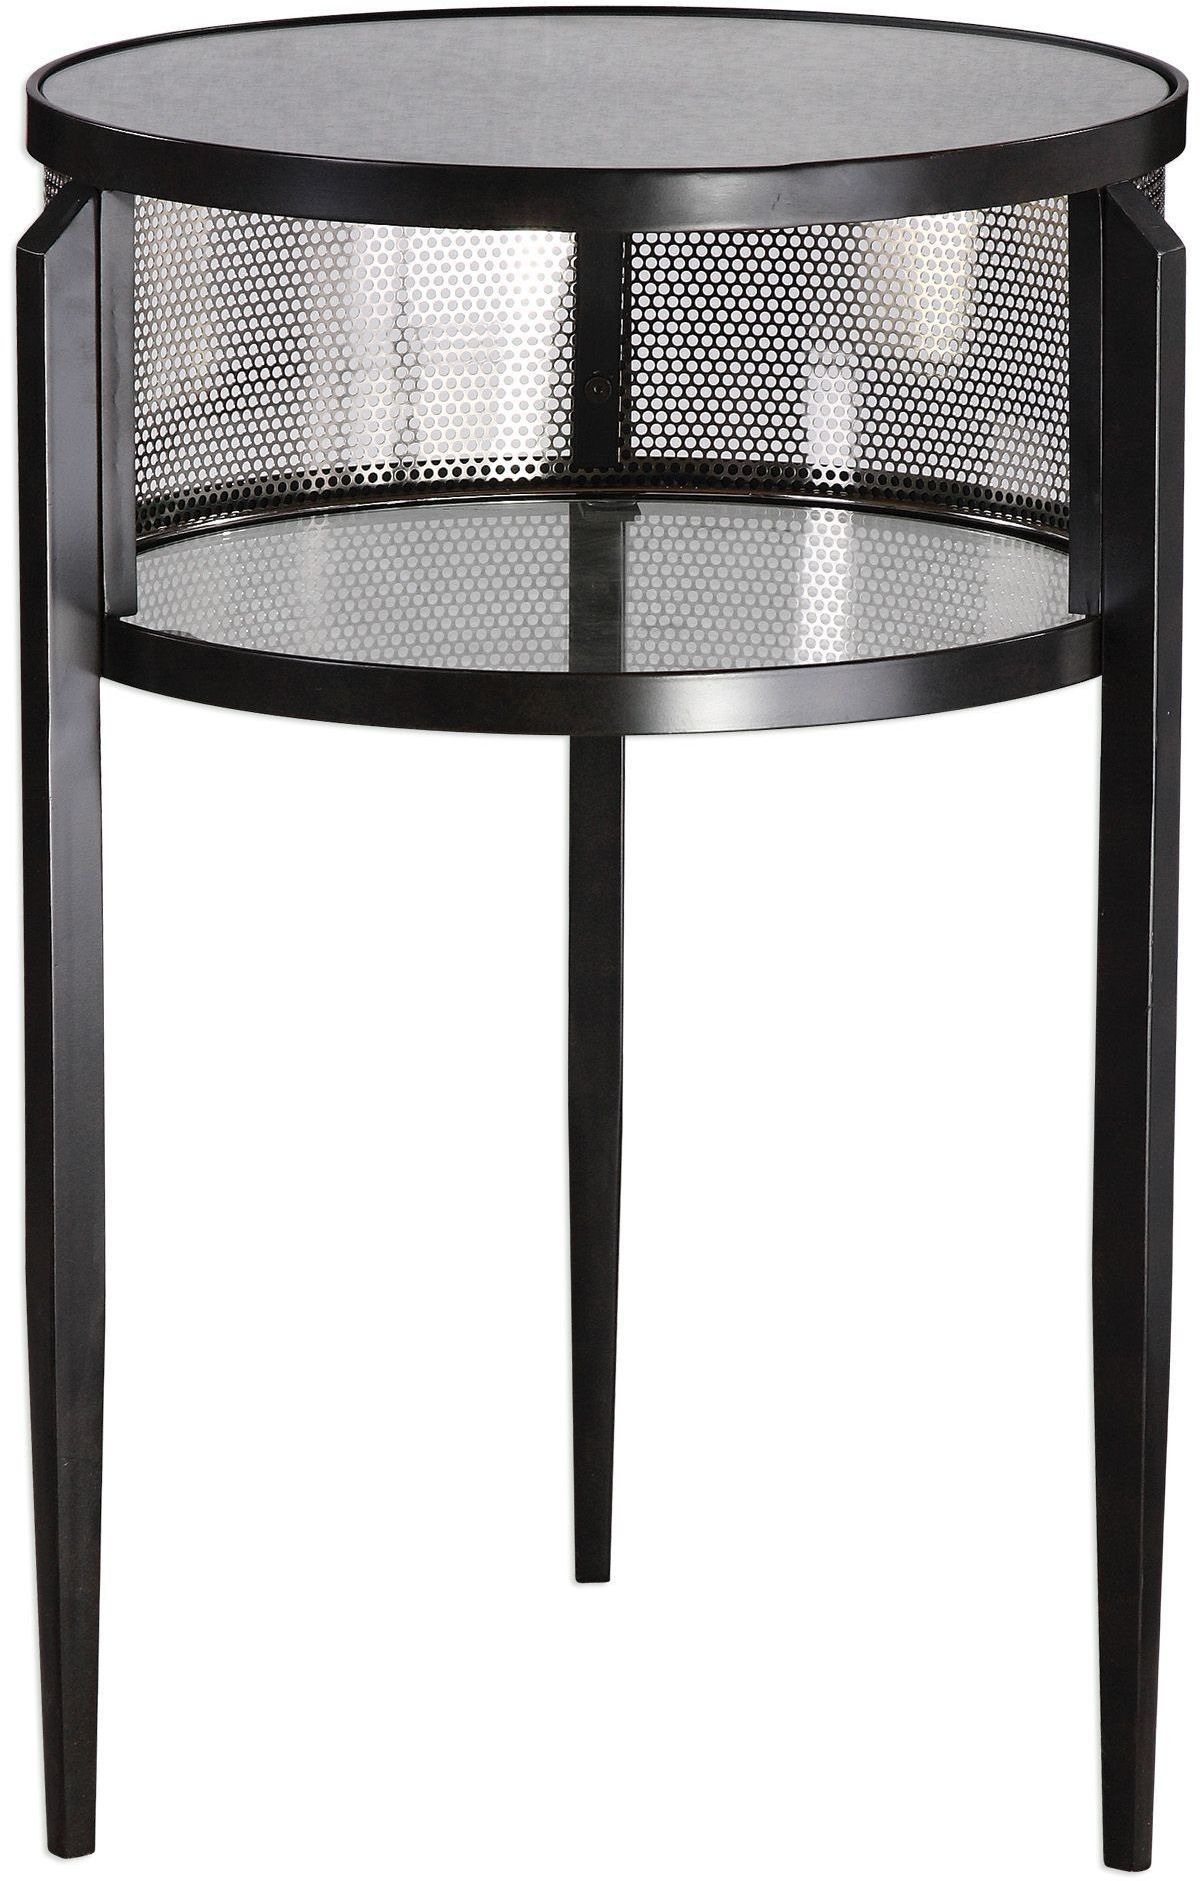 This Drum Style Accent Table Is Finished In Aged Black Iron With Slim Tapered Legs